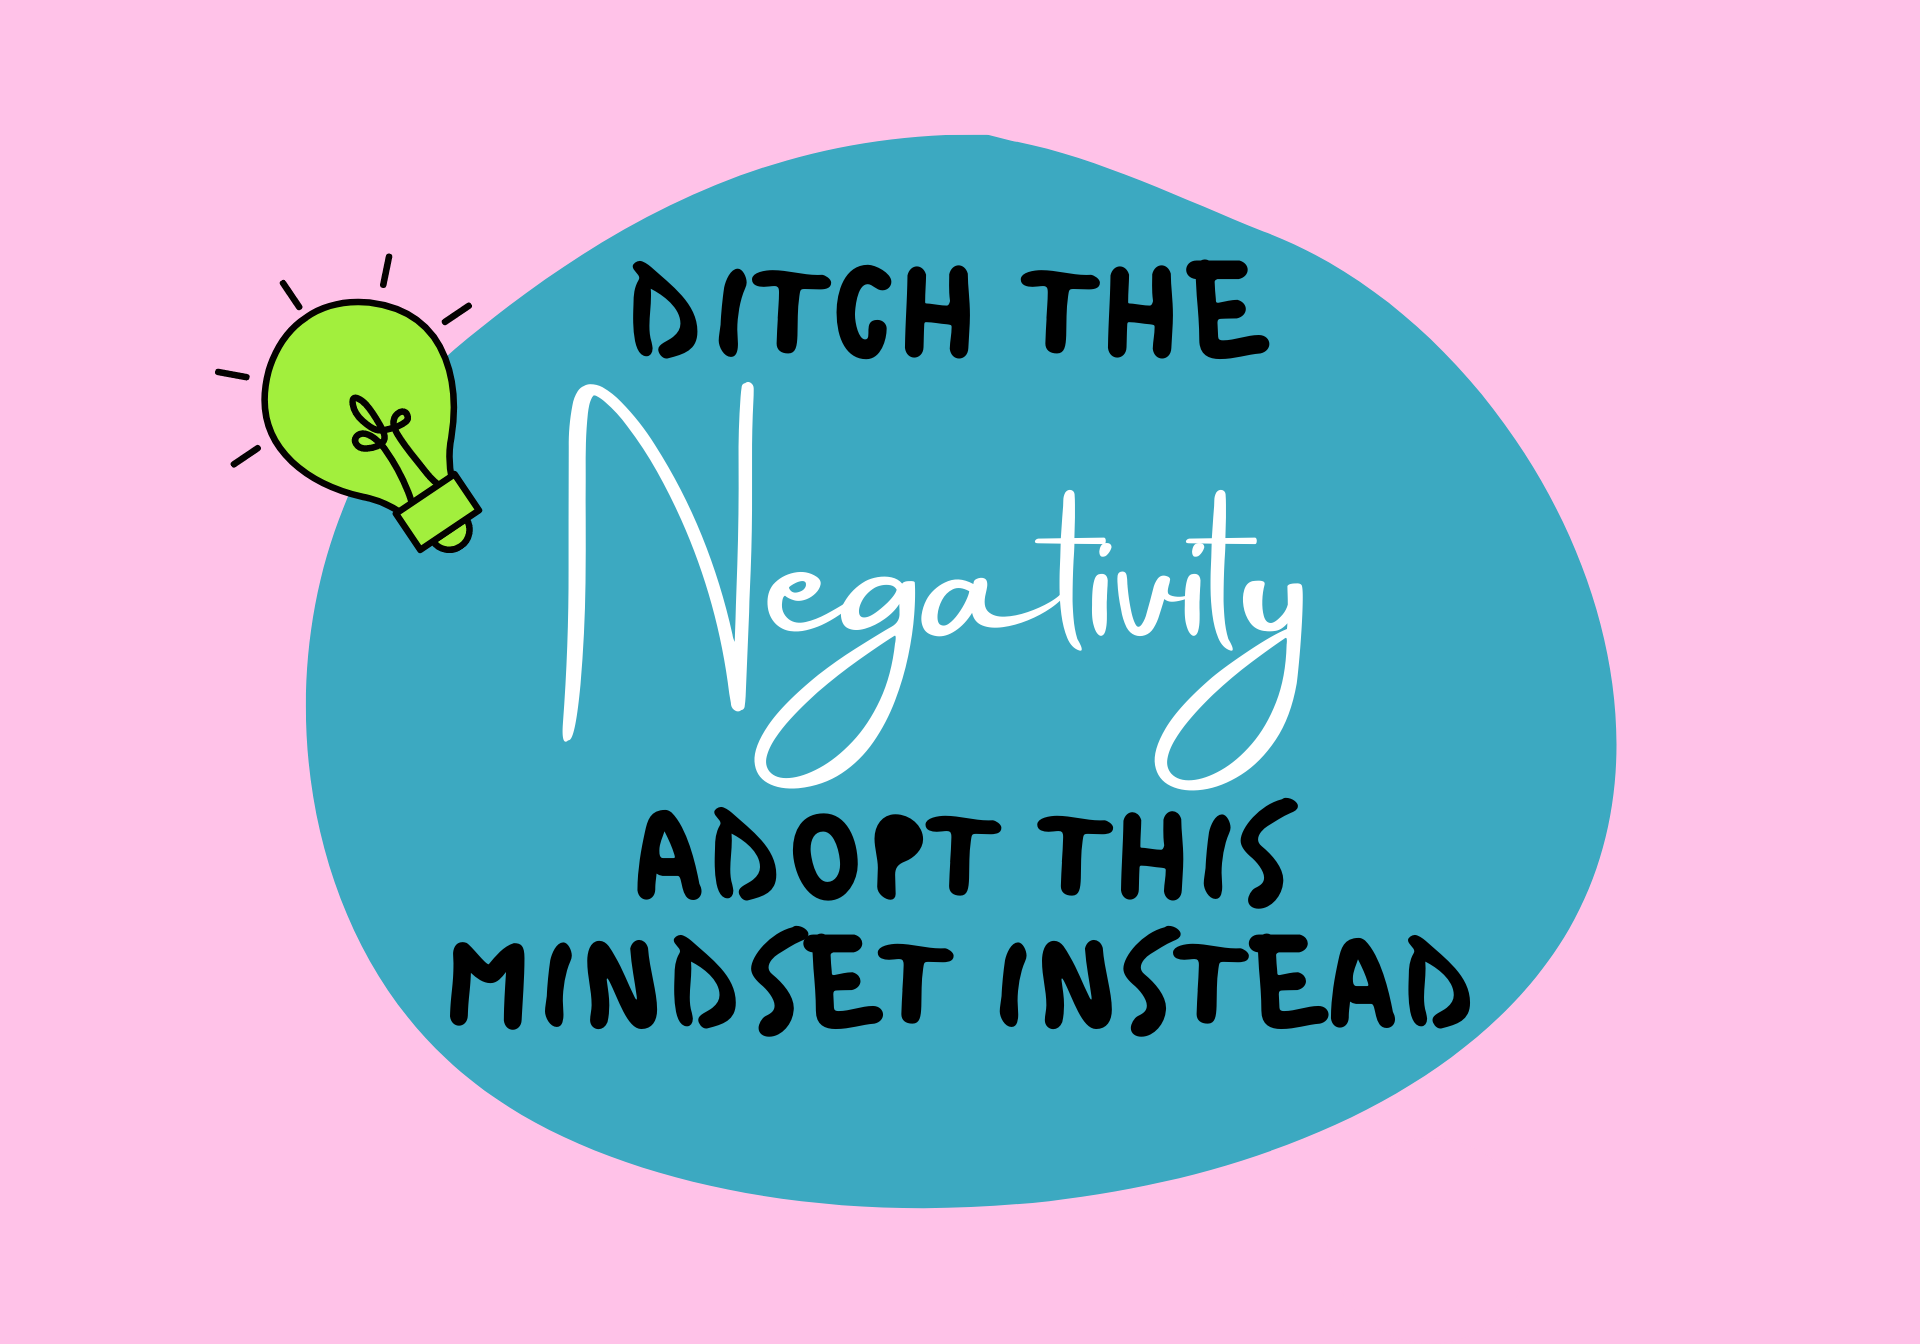 Ditch The Negativity - Adopt This Mindset Instead